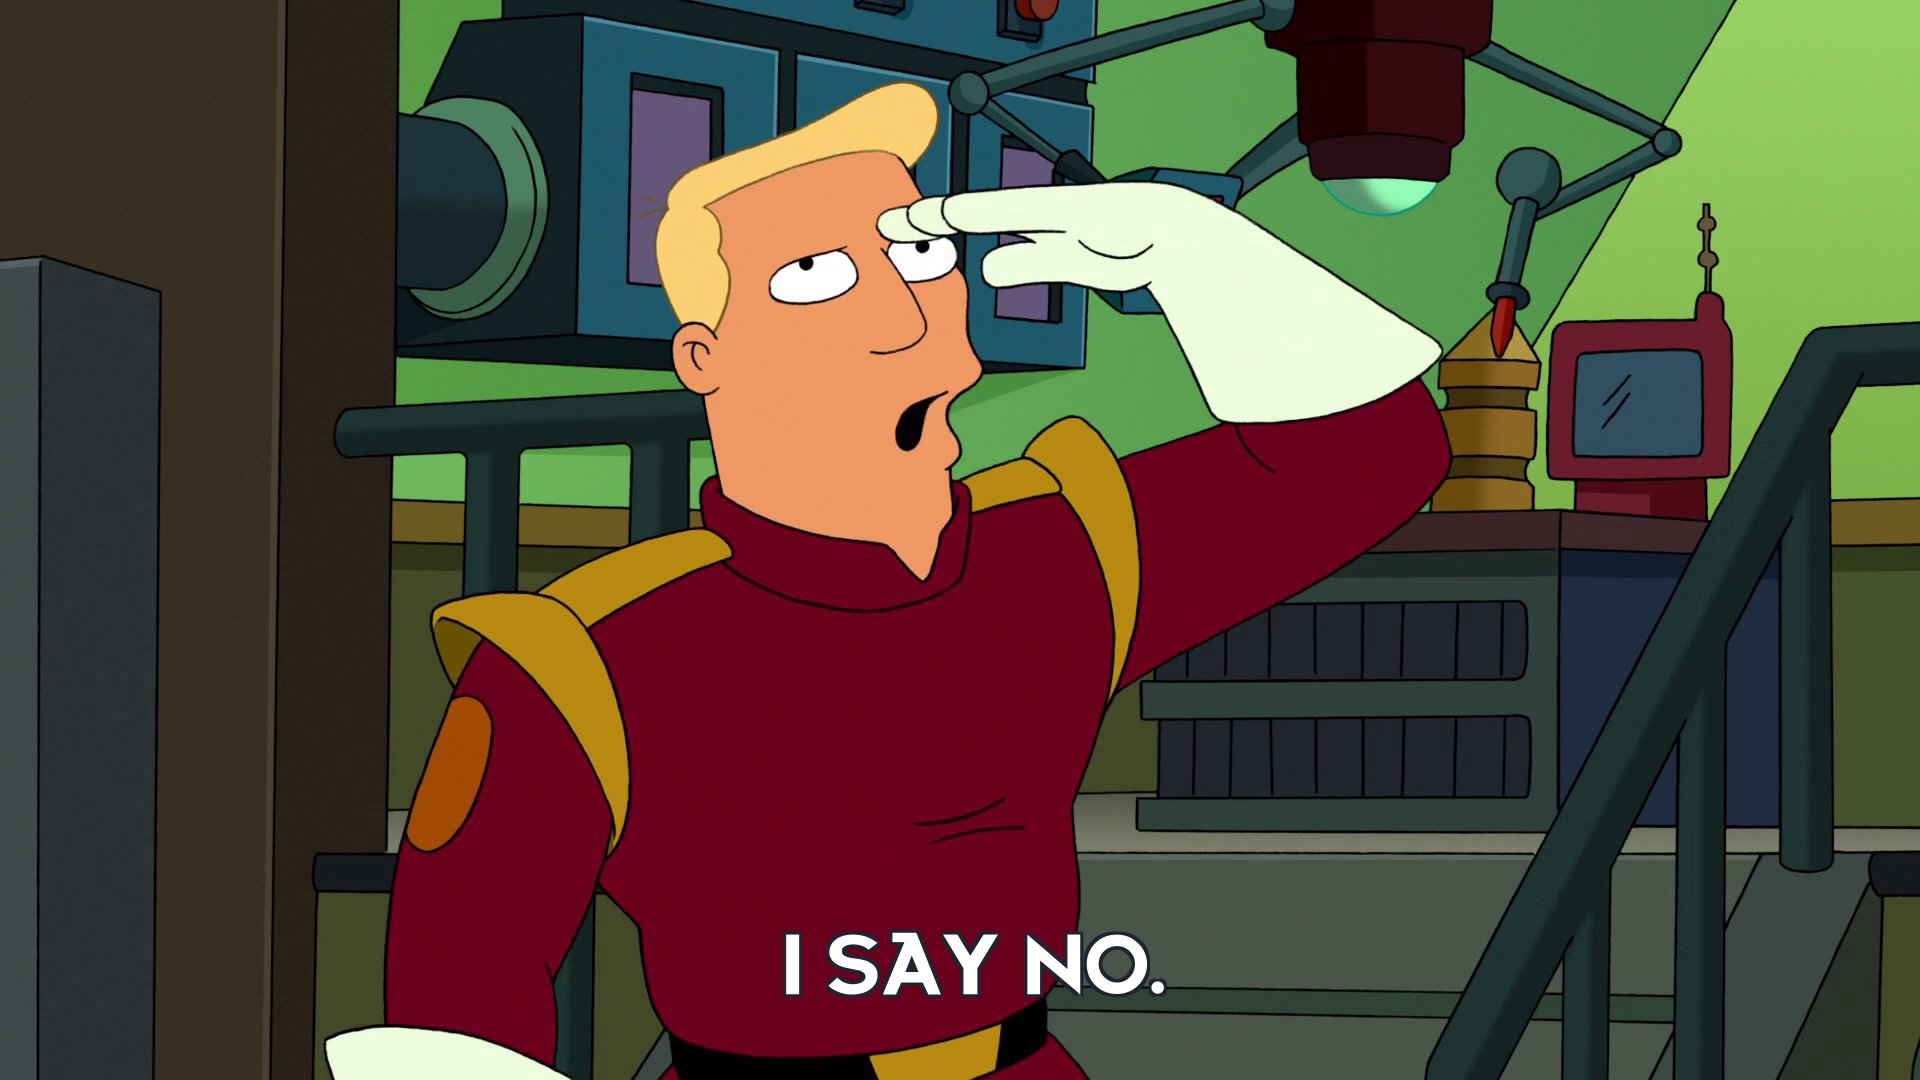 Zapp Brannigan: I say no.